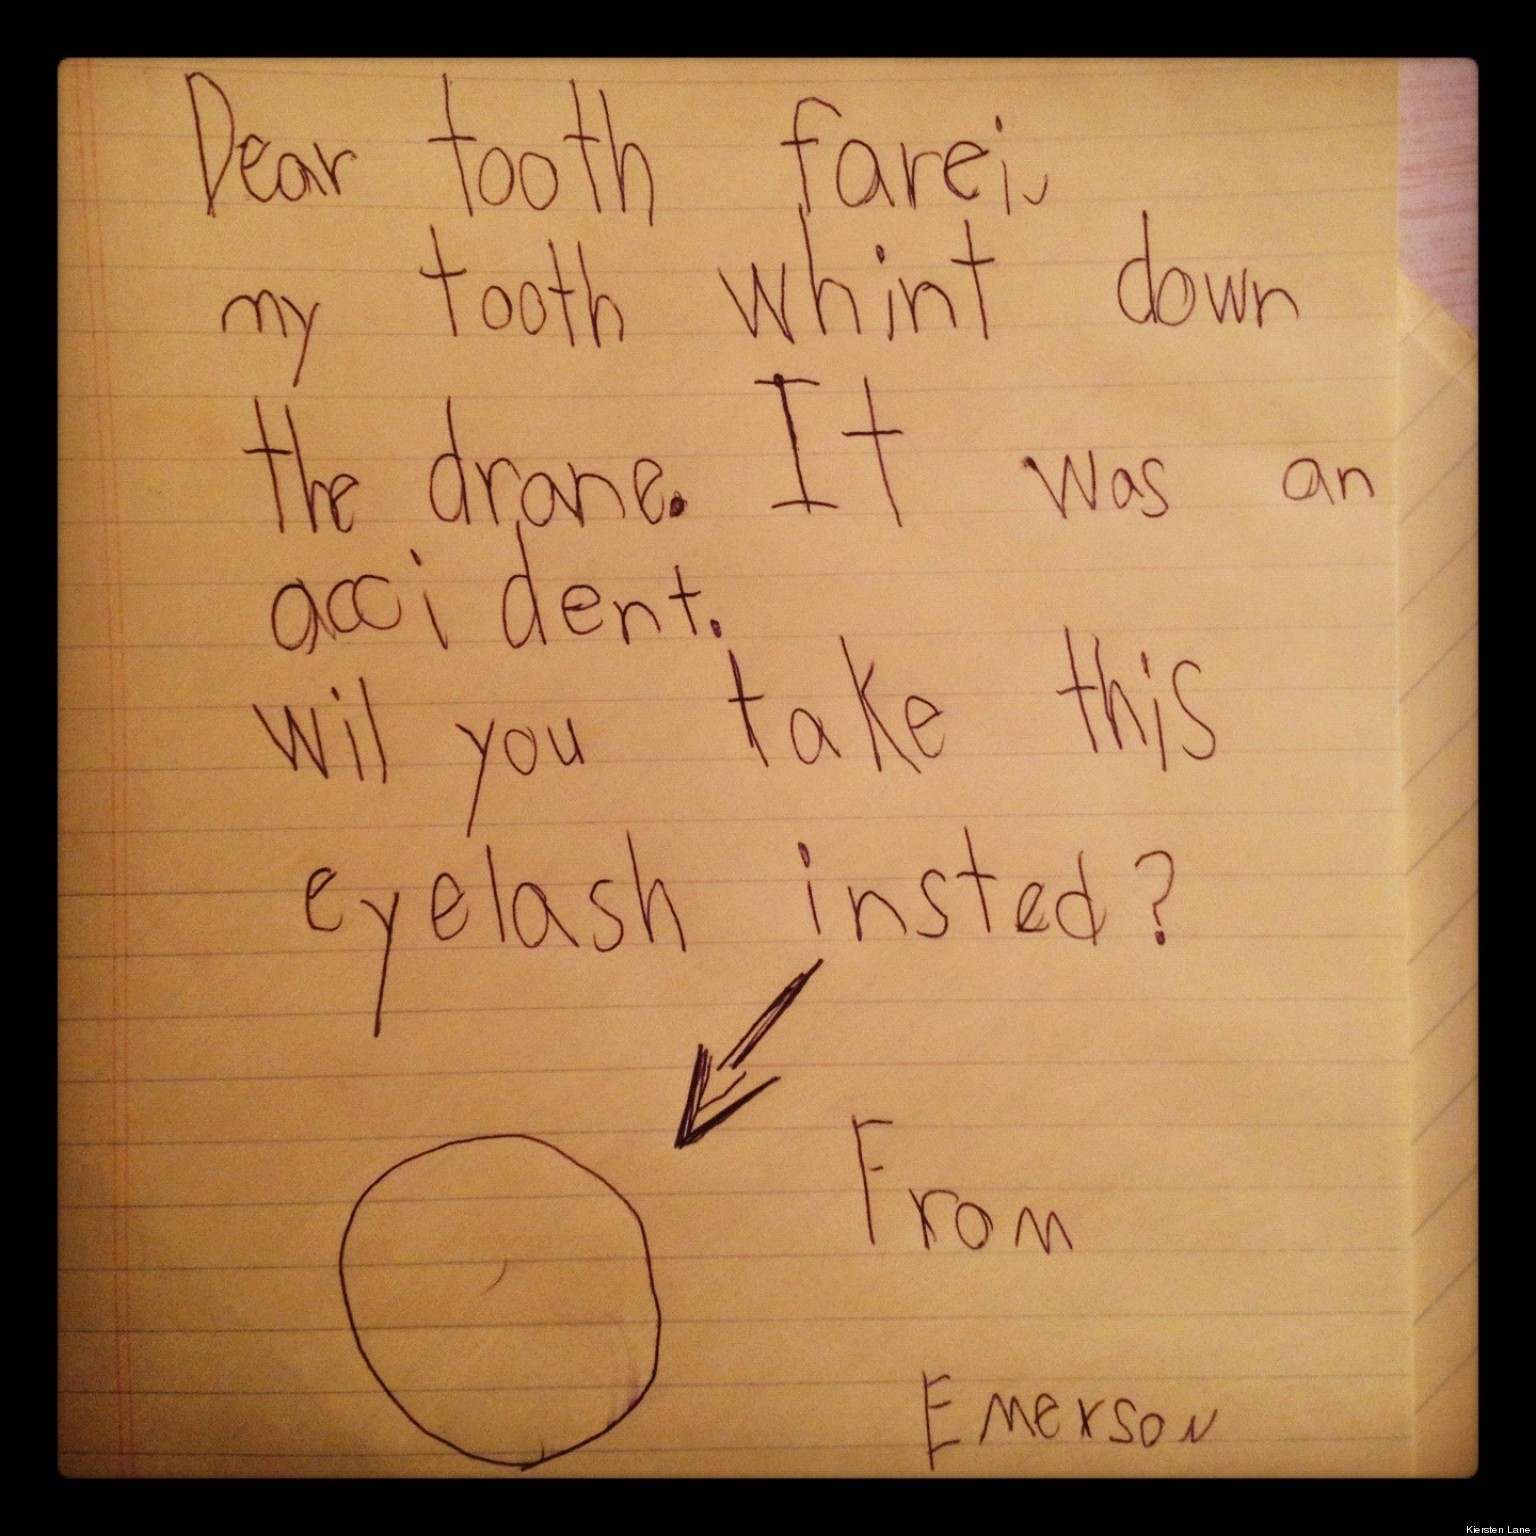 cute kid note of the day   u0026 39 my tooth whint down the drane